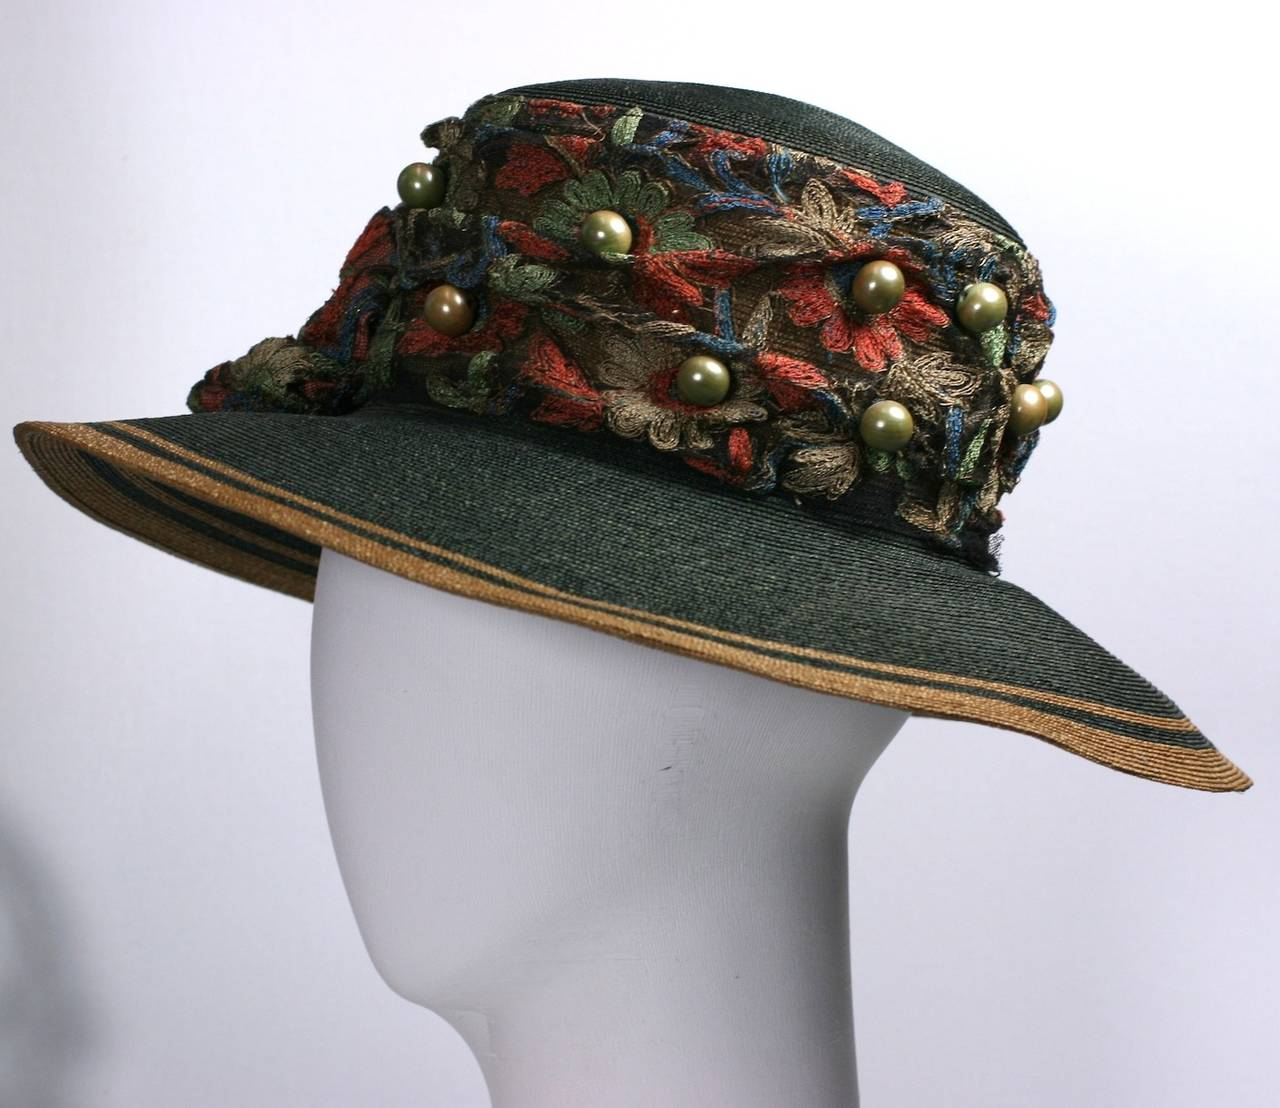 Edwardian straw hat with floral lace and large green faux pearls from the early 20th Century. 2 toned straw is decorated with a wide vibrant band of floral lace and 3 large lace rosettes. Large celadon faux pearls are strewn throughout. Black silk